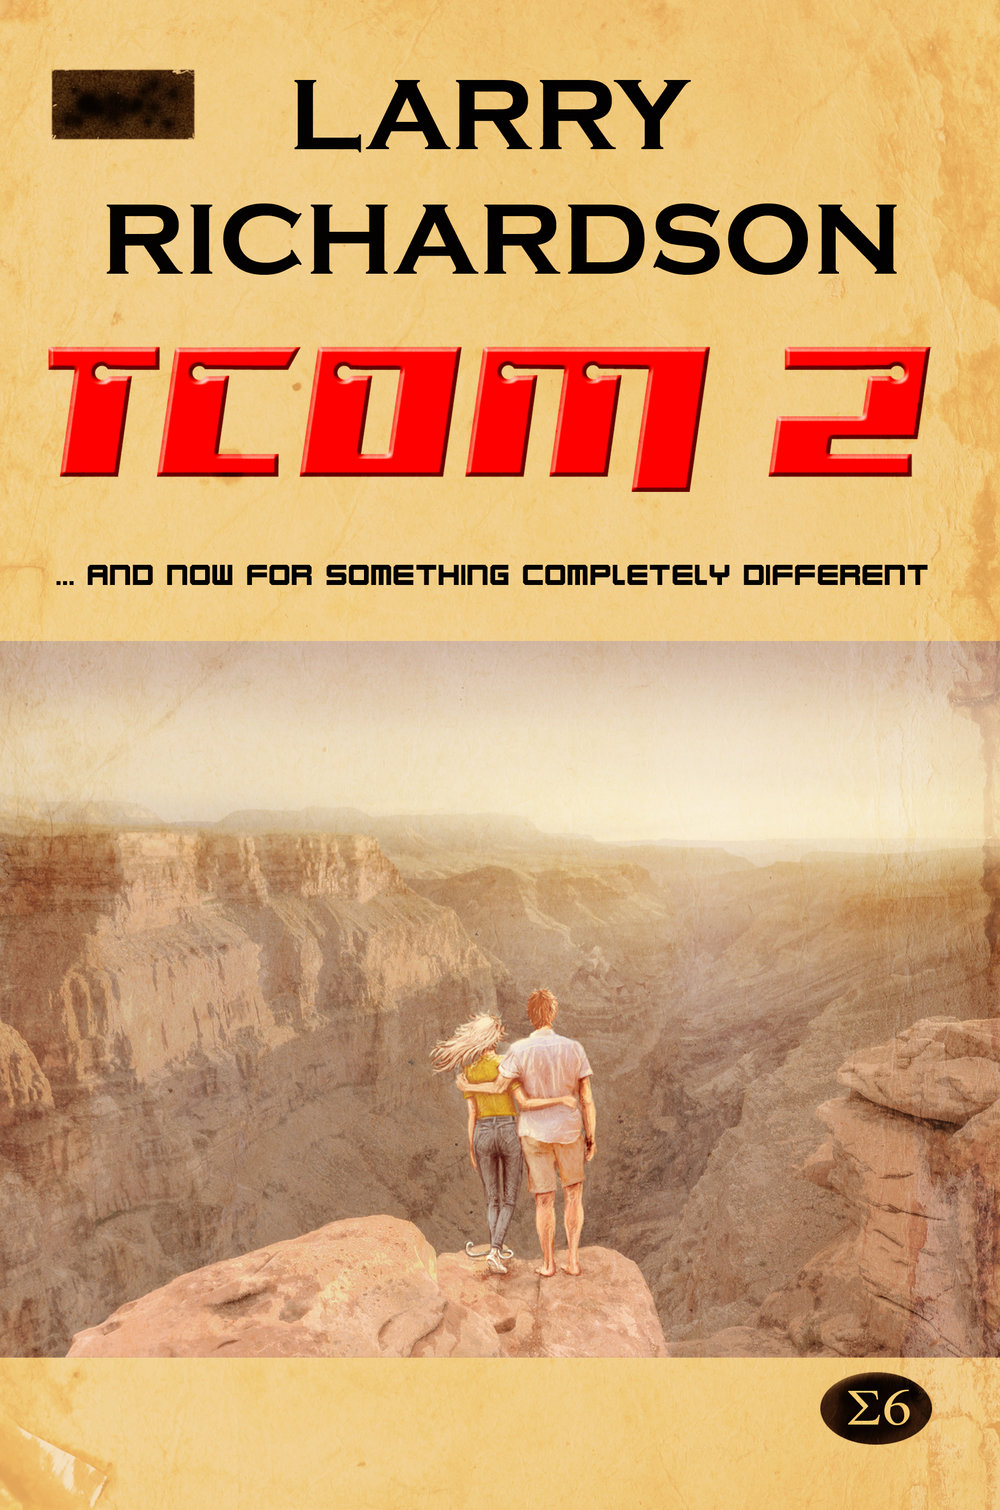 TCOM2 - The humans have returned, and they have come in their thousands, but this time they have not come as explorers, but as settlers, and the Martian AIs, divided against and within themselves, find that they are displaced in new and alarming ways. They must adapt, and the planet must adapt with them, but unknown to the arriving droves, something ancient is stirring within the Martian crust.